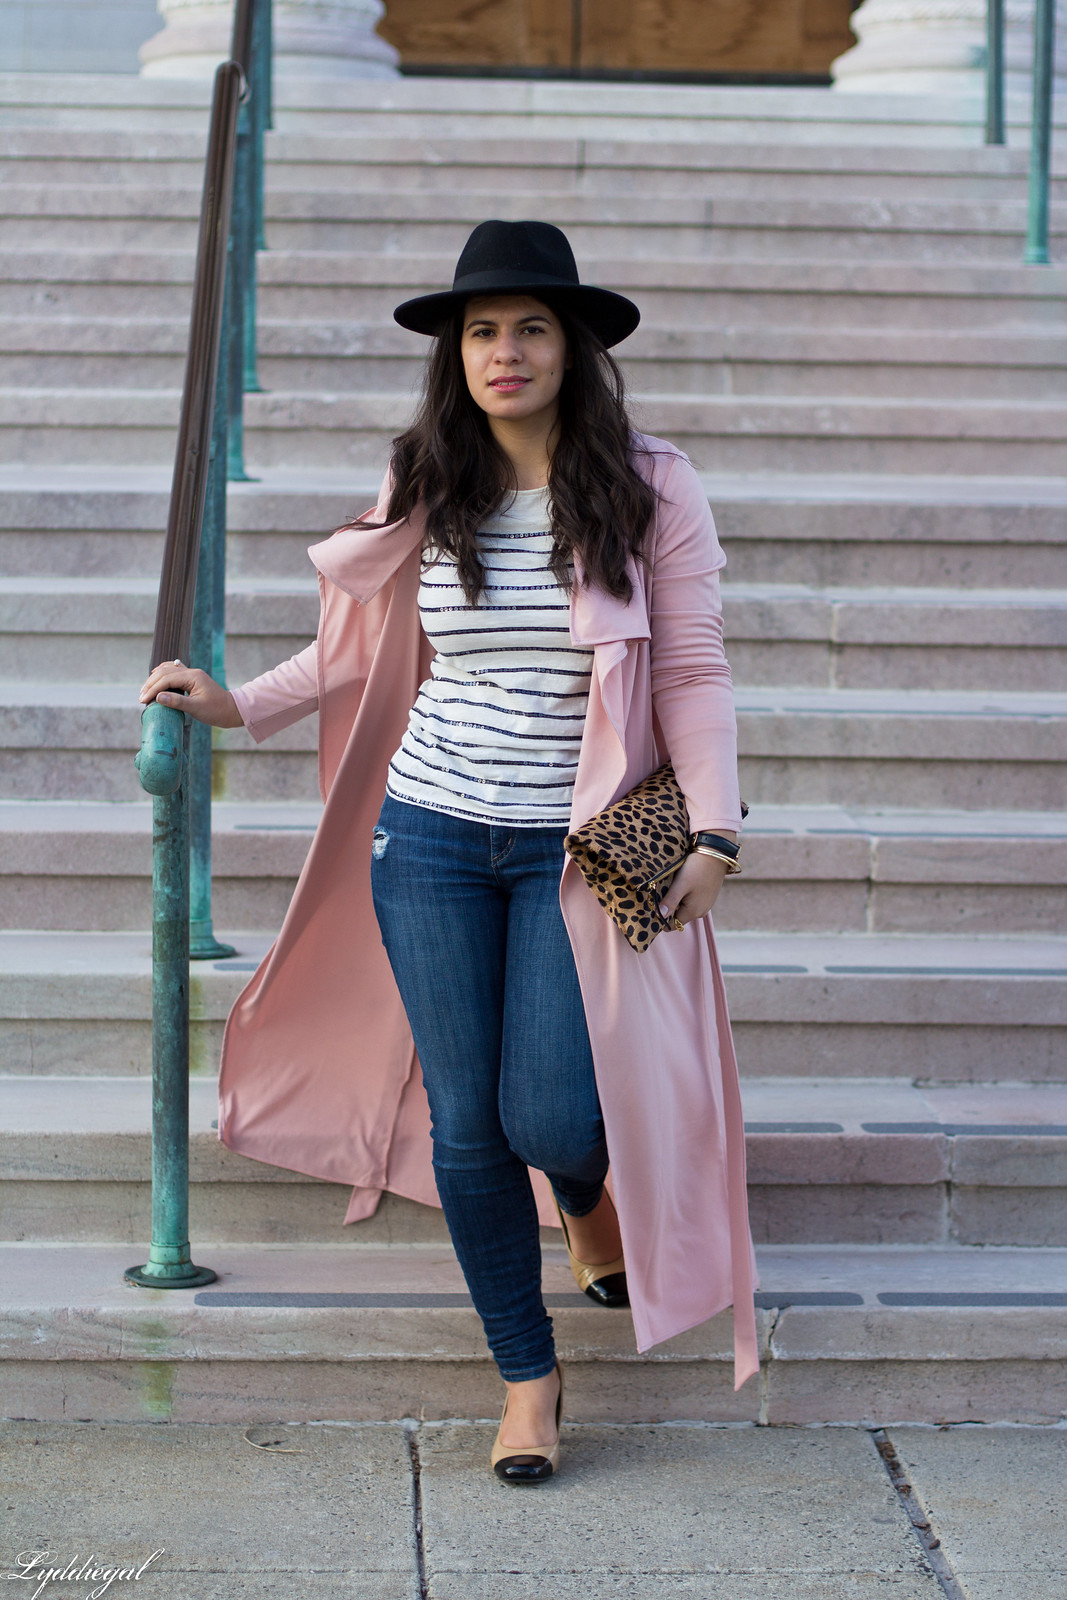 blush draped trench coat, striped tee, leopard clutch-2.jpg